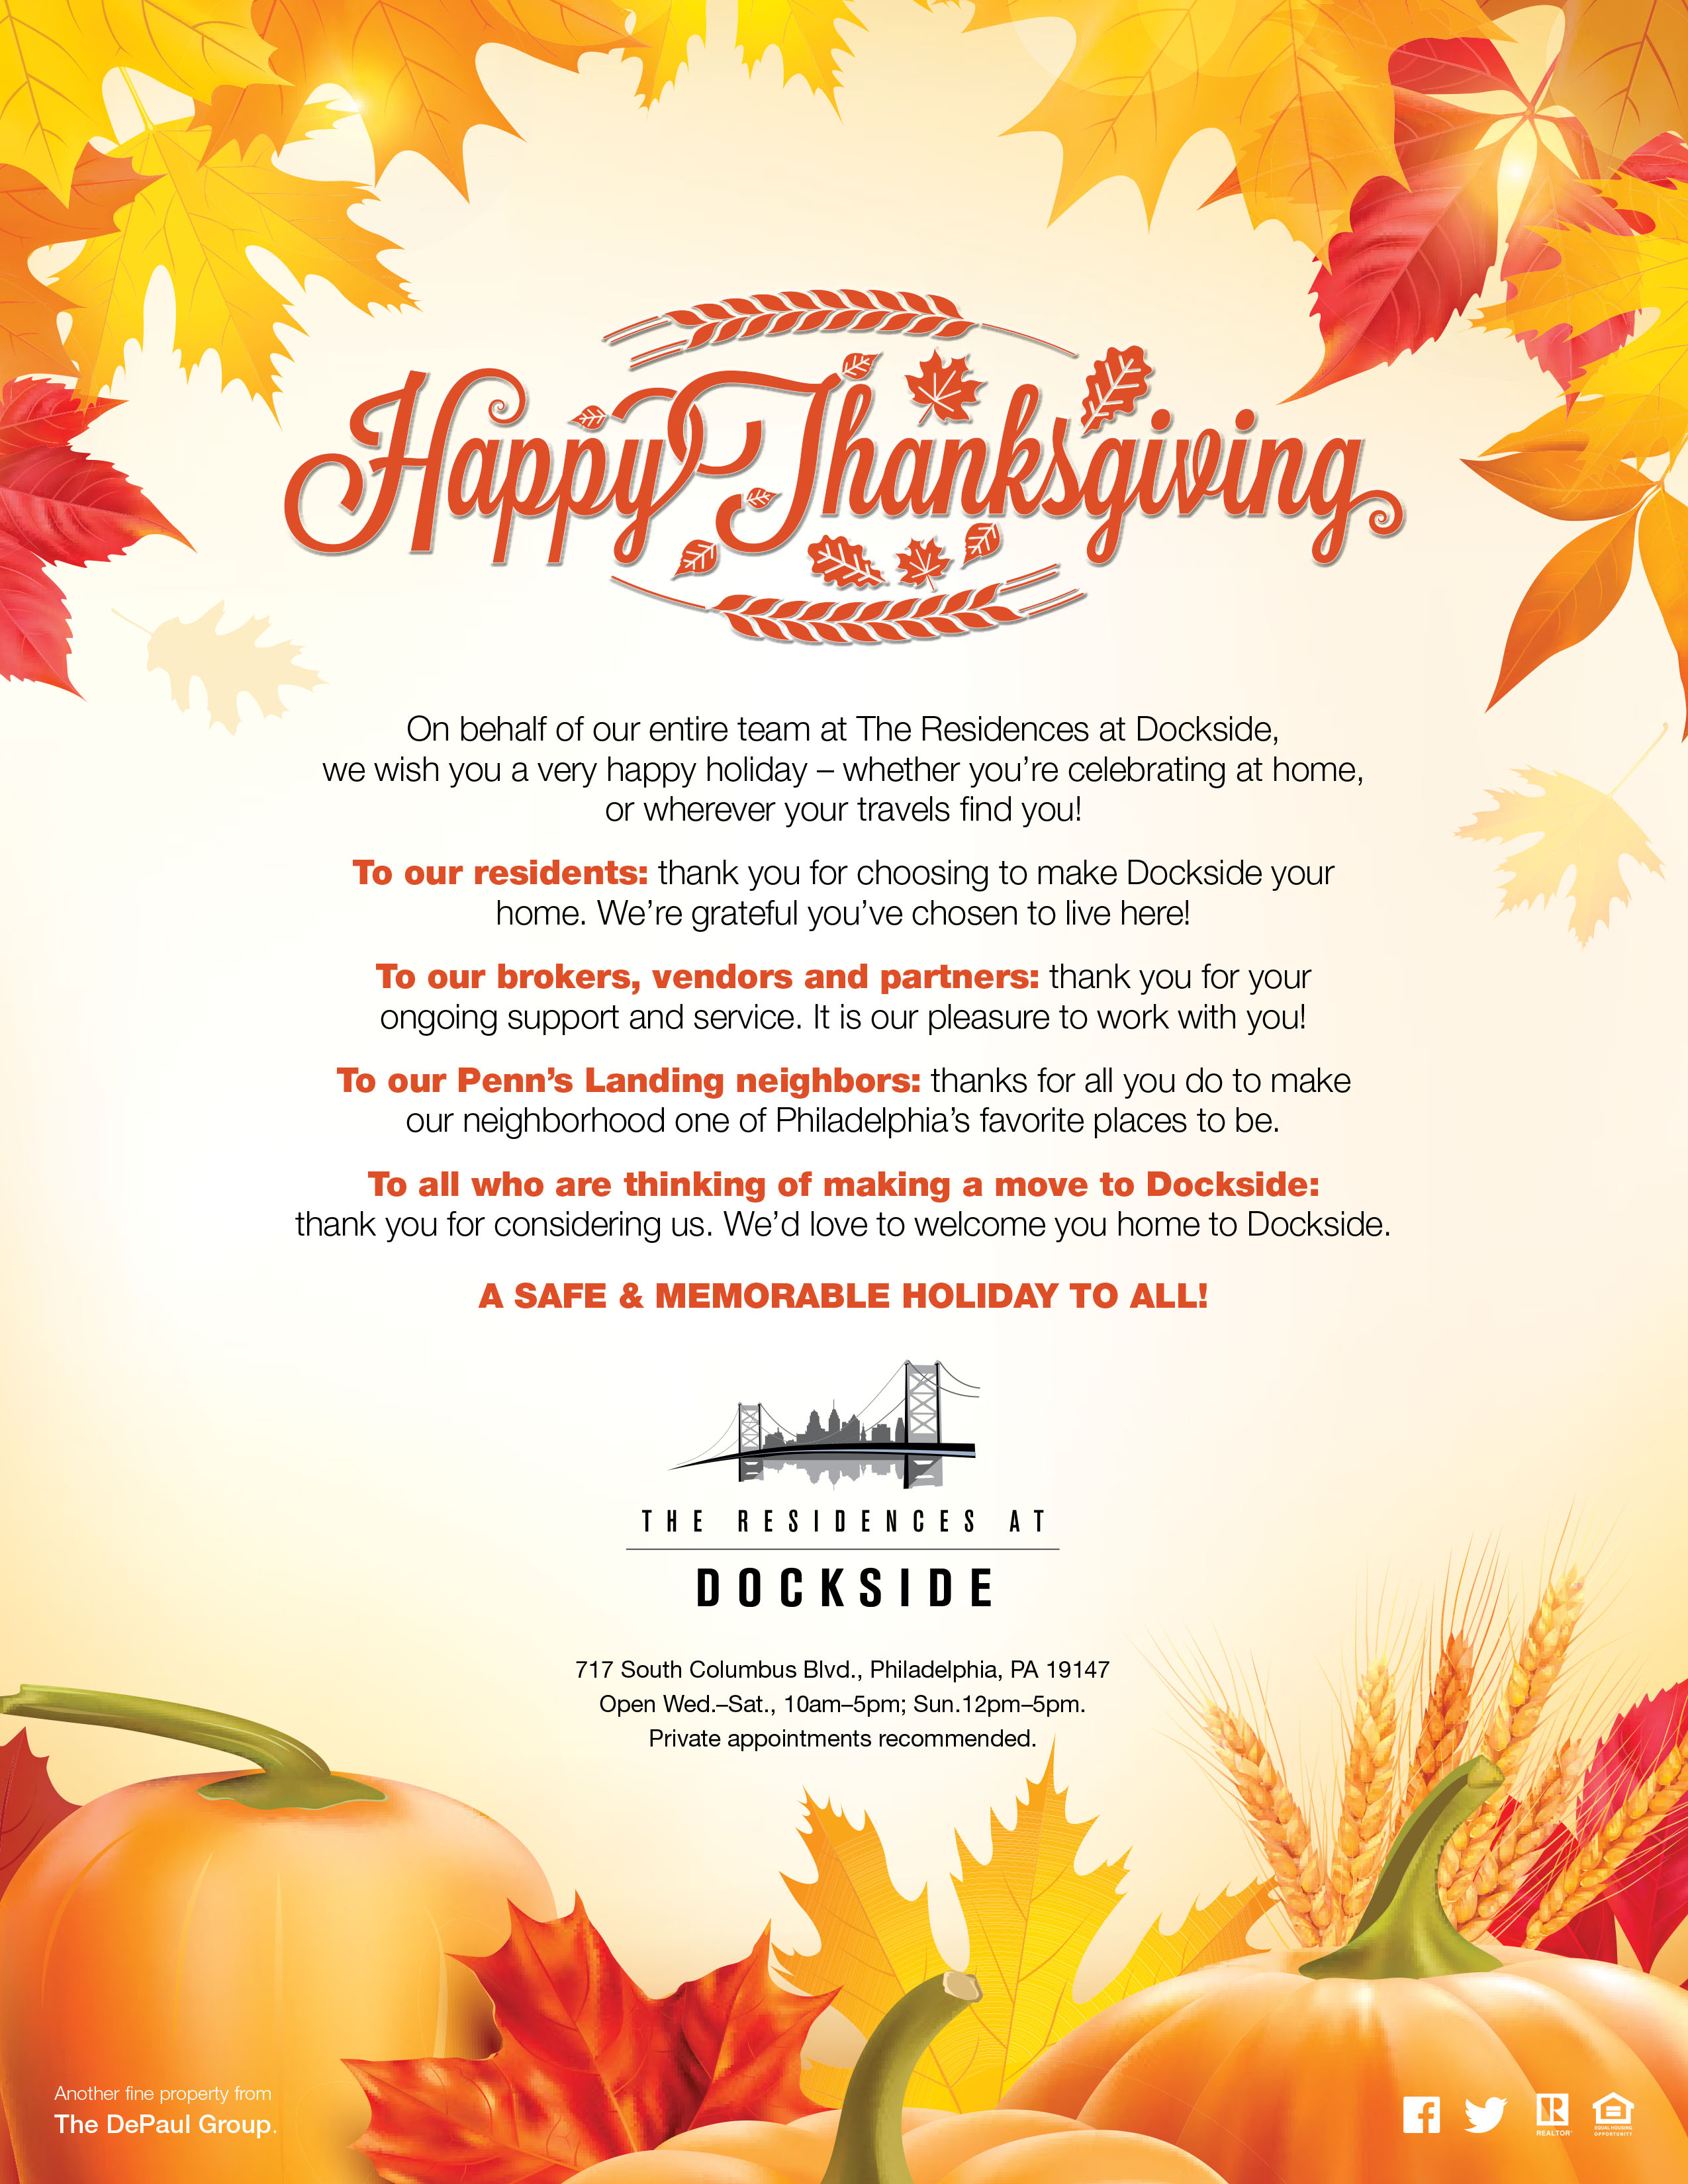 Dockside Thanksgiving Greeting 2017